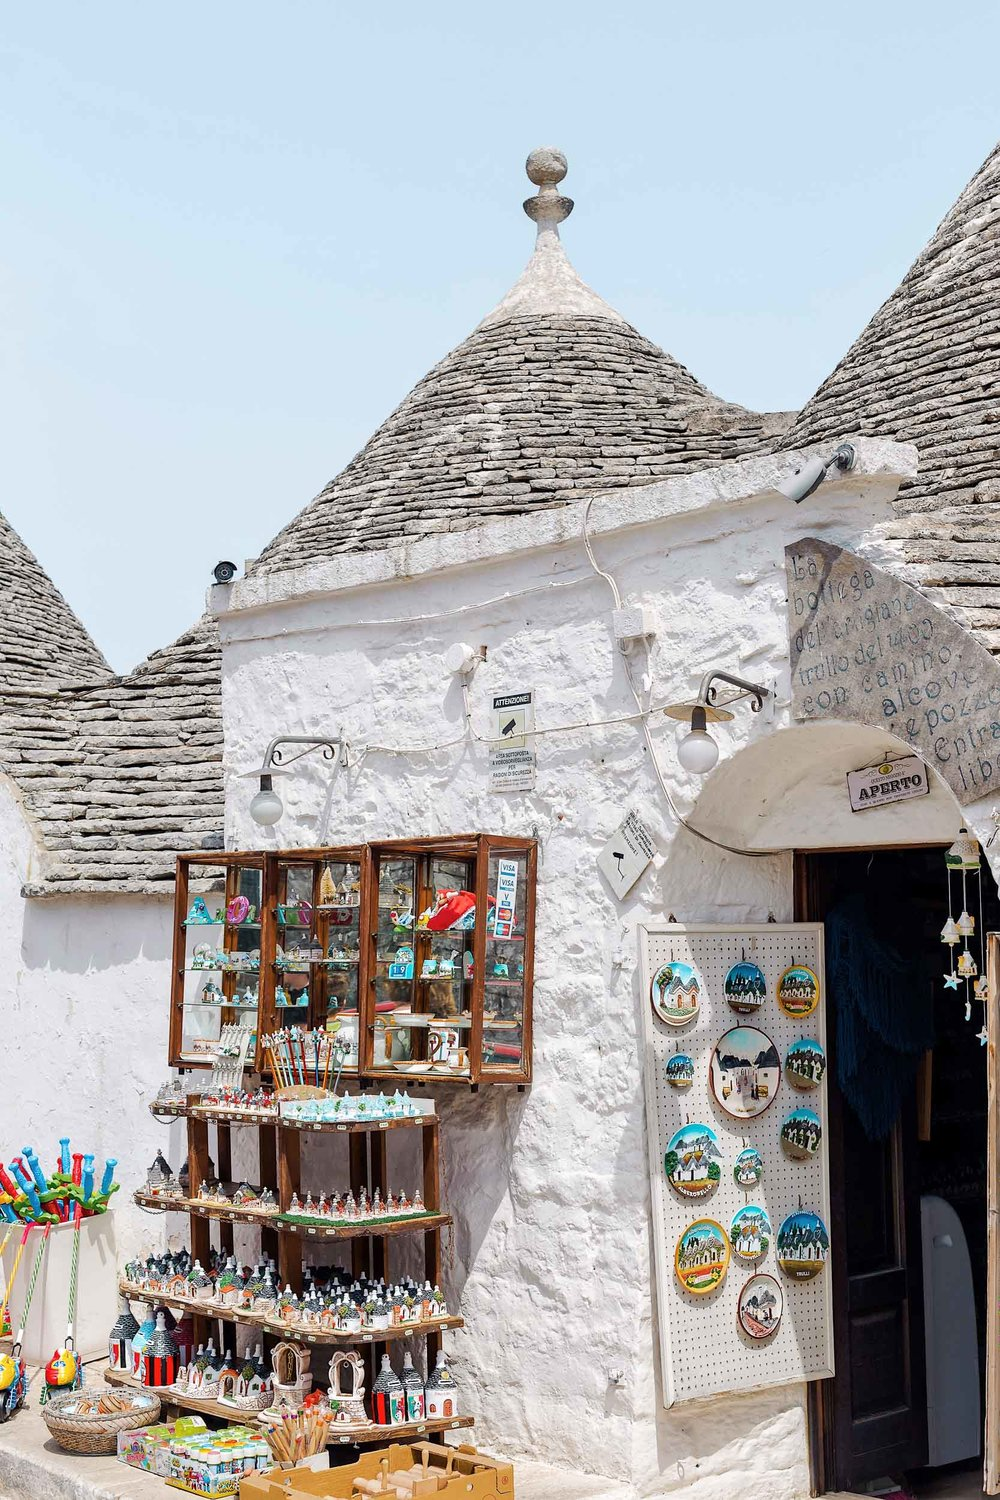 Alberobello tourist information